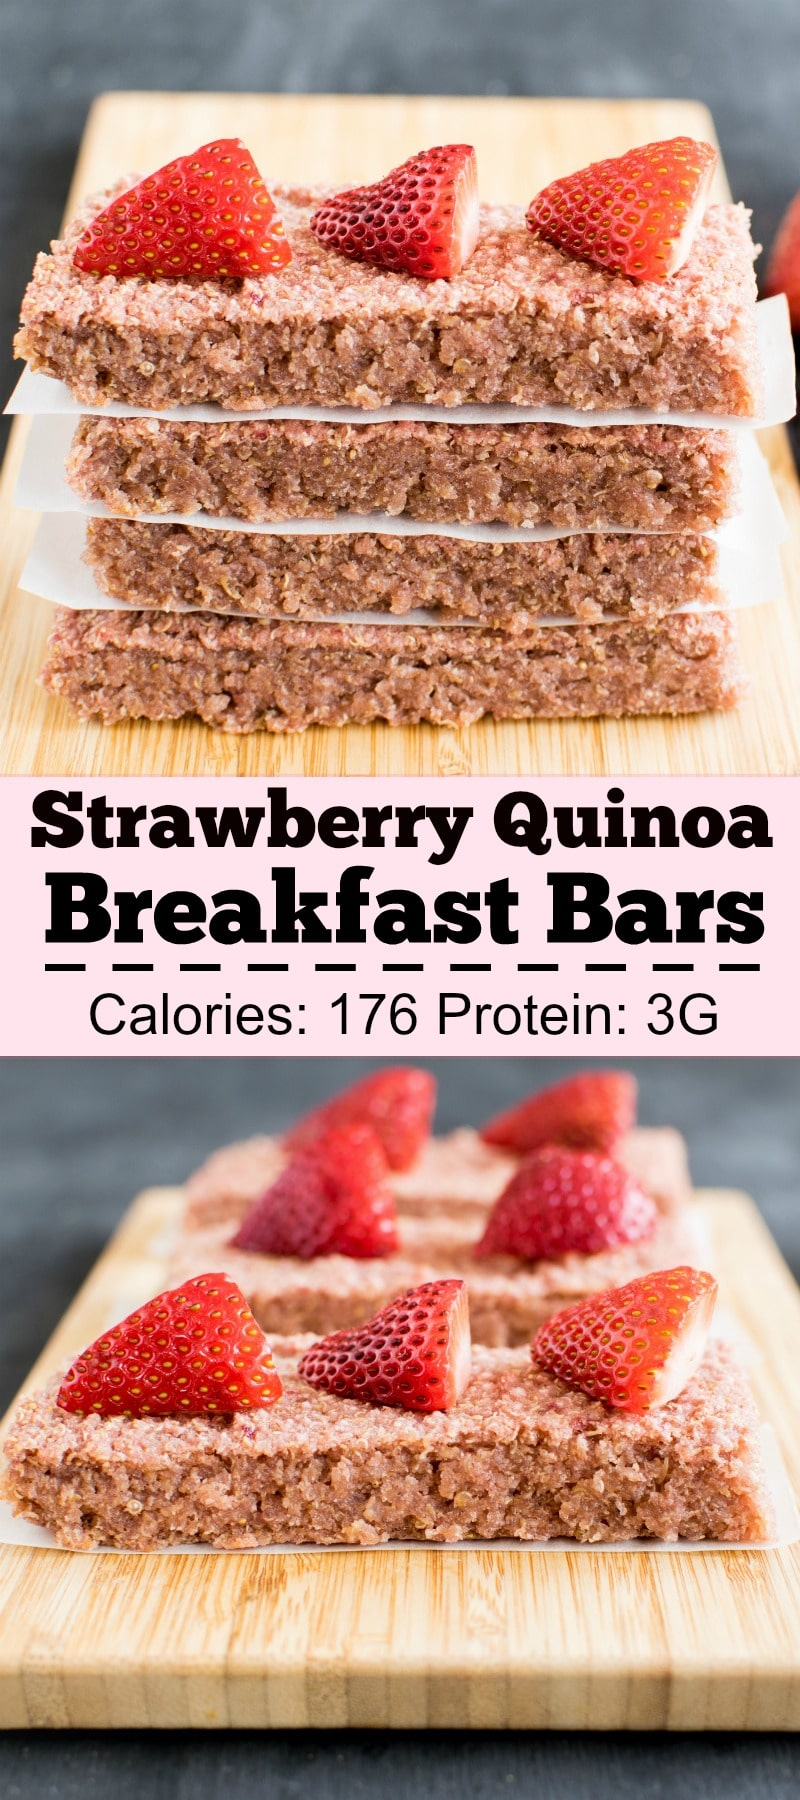 Strawberry Quinoa Breakfast Bars are an absolute delight. It's the prefect grab and go breakfast and serves well as a snack for those odd hours [ vegan + gf + nutfree ] kiipfit.com